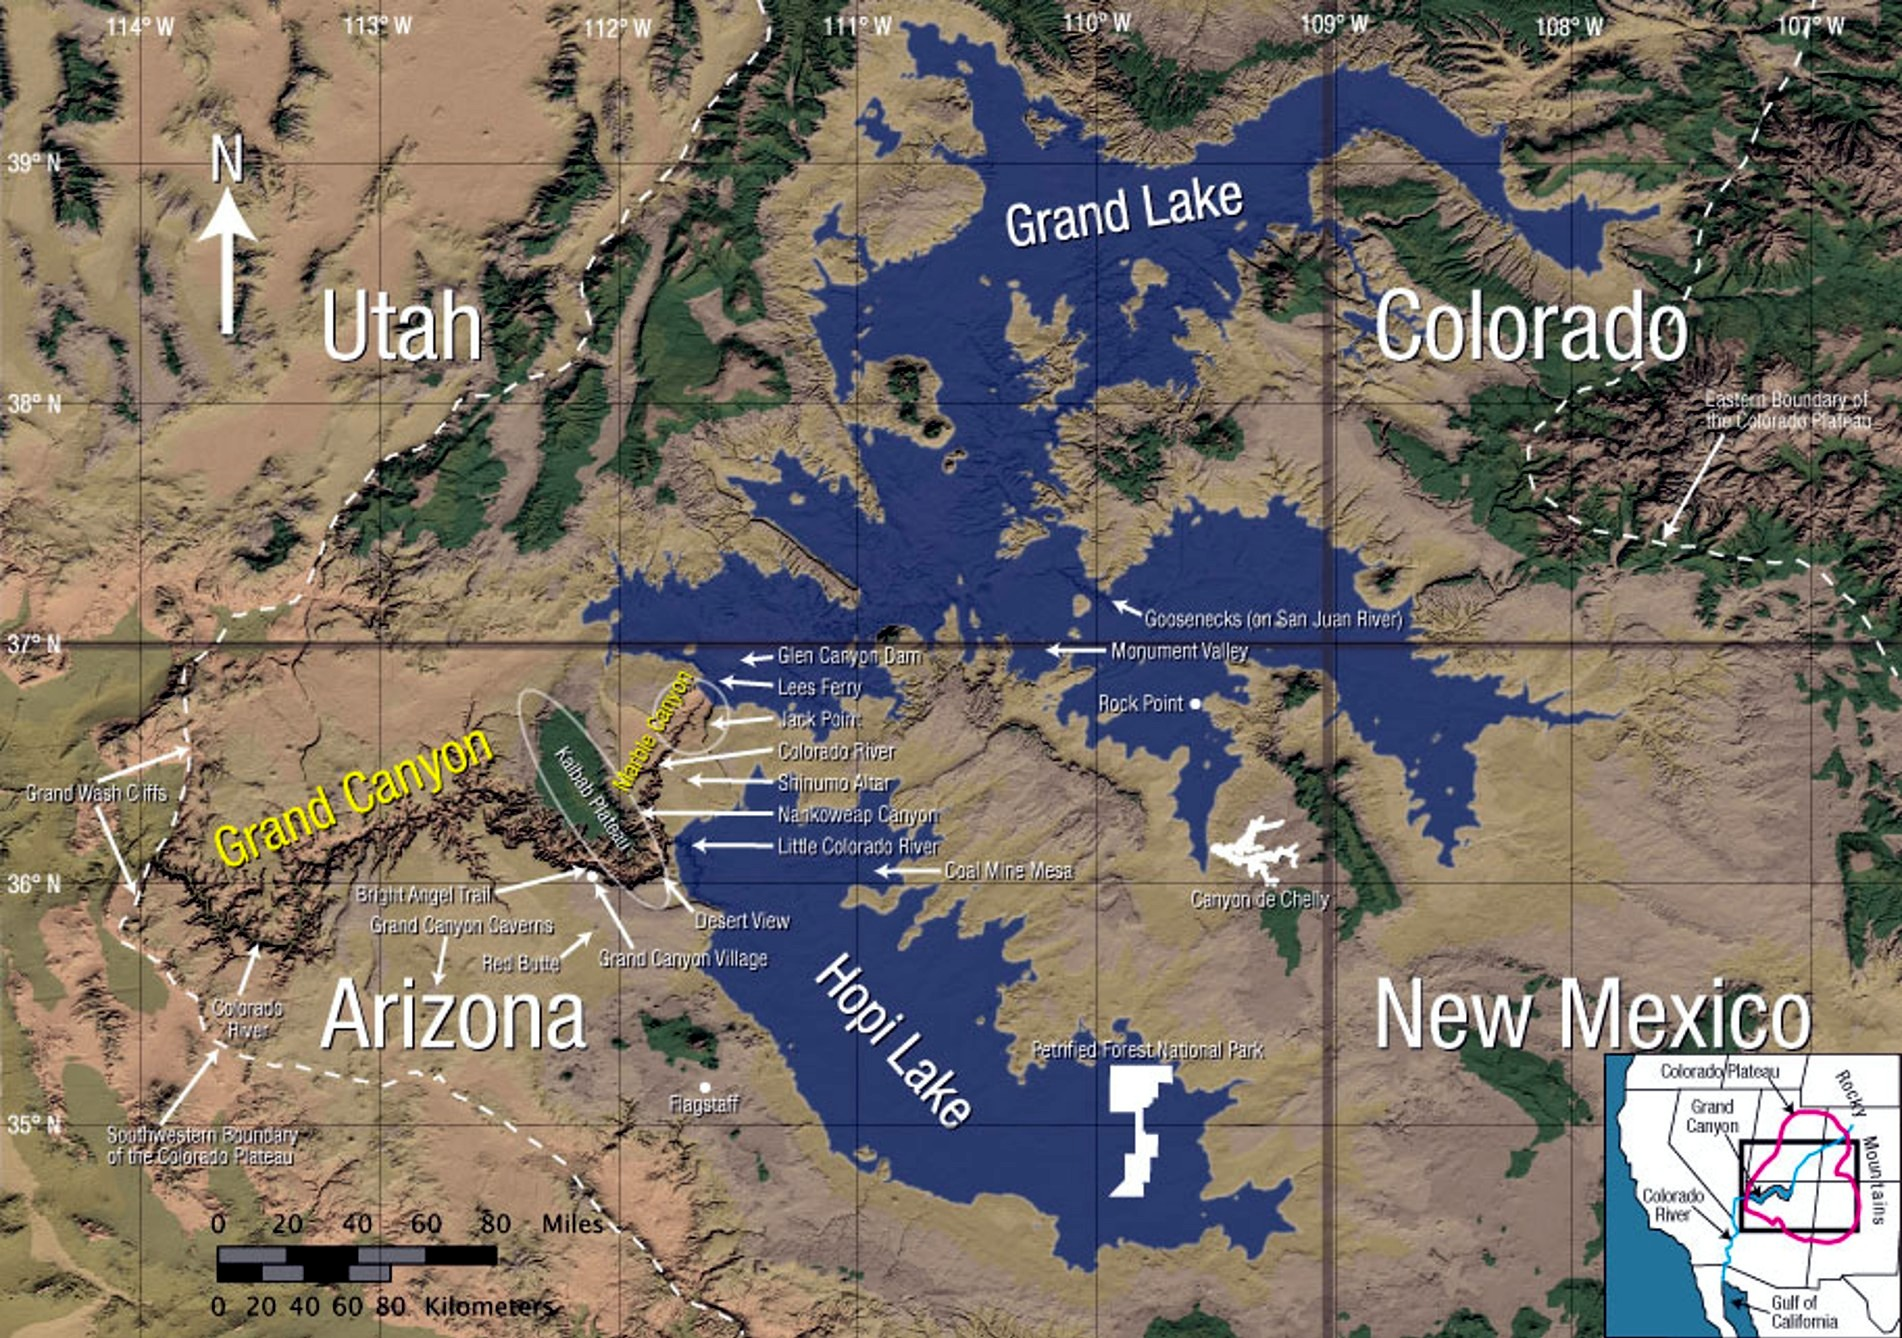 Map Of Hypothetical Floodwater Remnant Lakes Of Colorado Plateau - Map of colorado plateau region